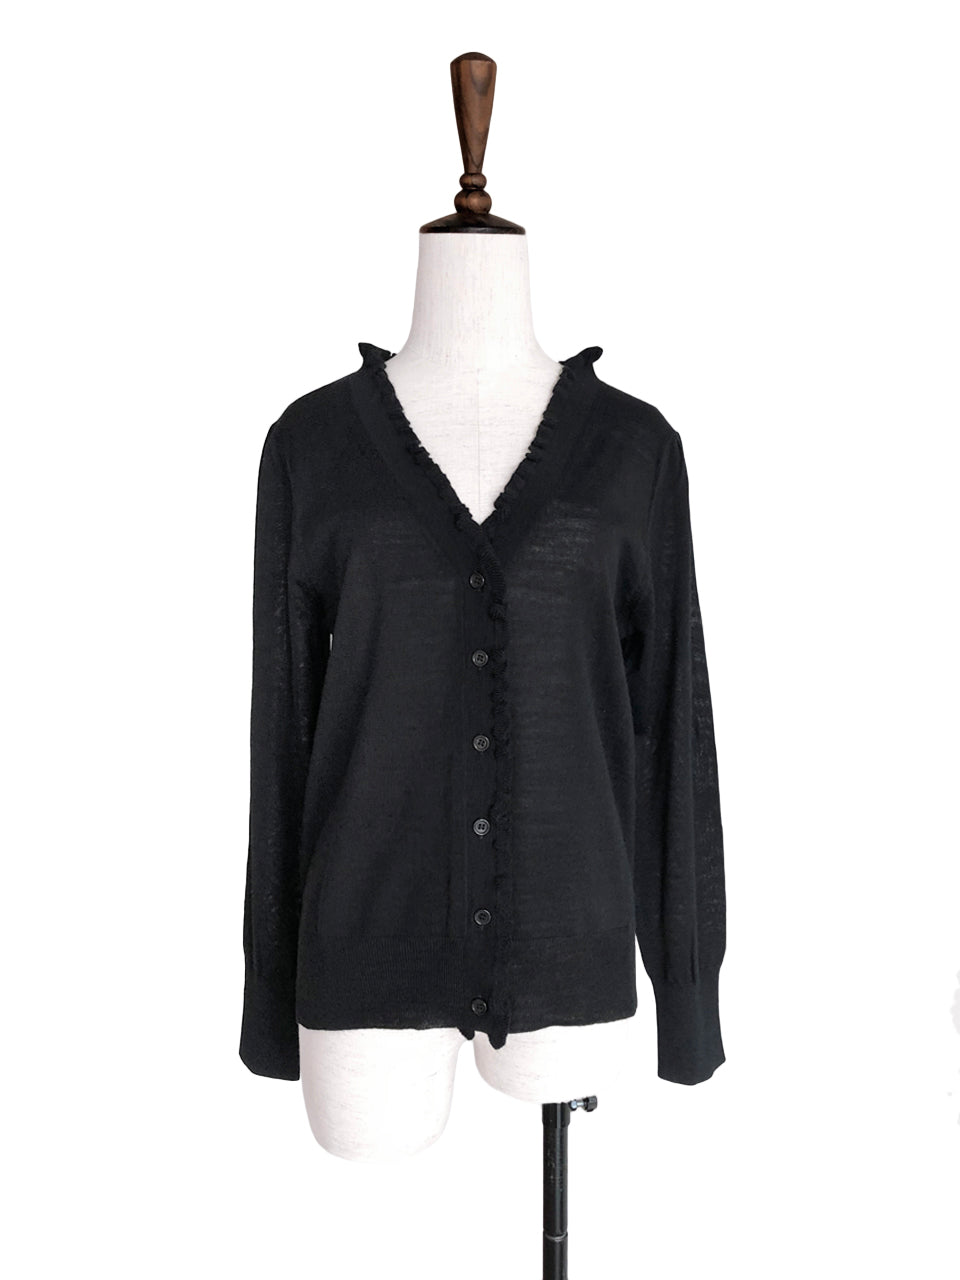 Surprise Sale! Classic Black Double V-Neck Frill Detail Cashmere Blend Cardigan Top